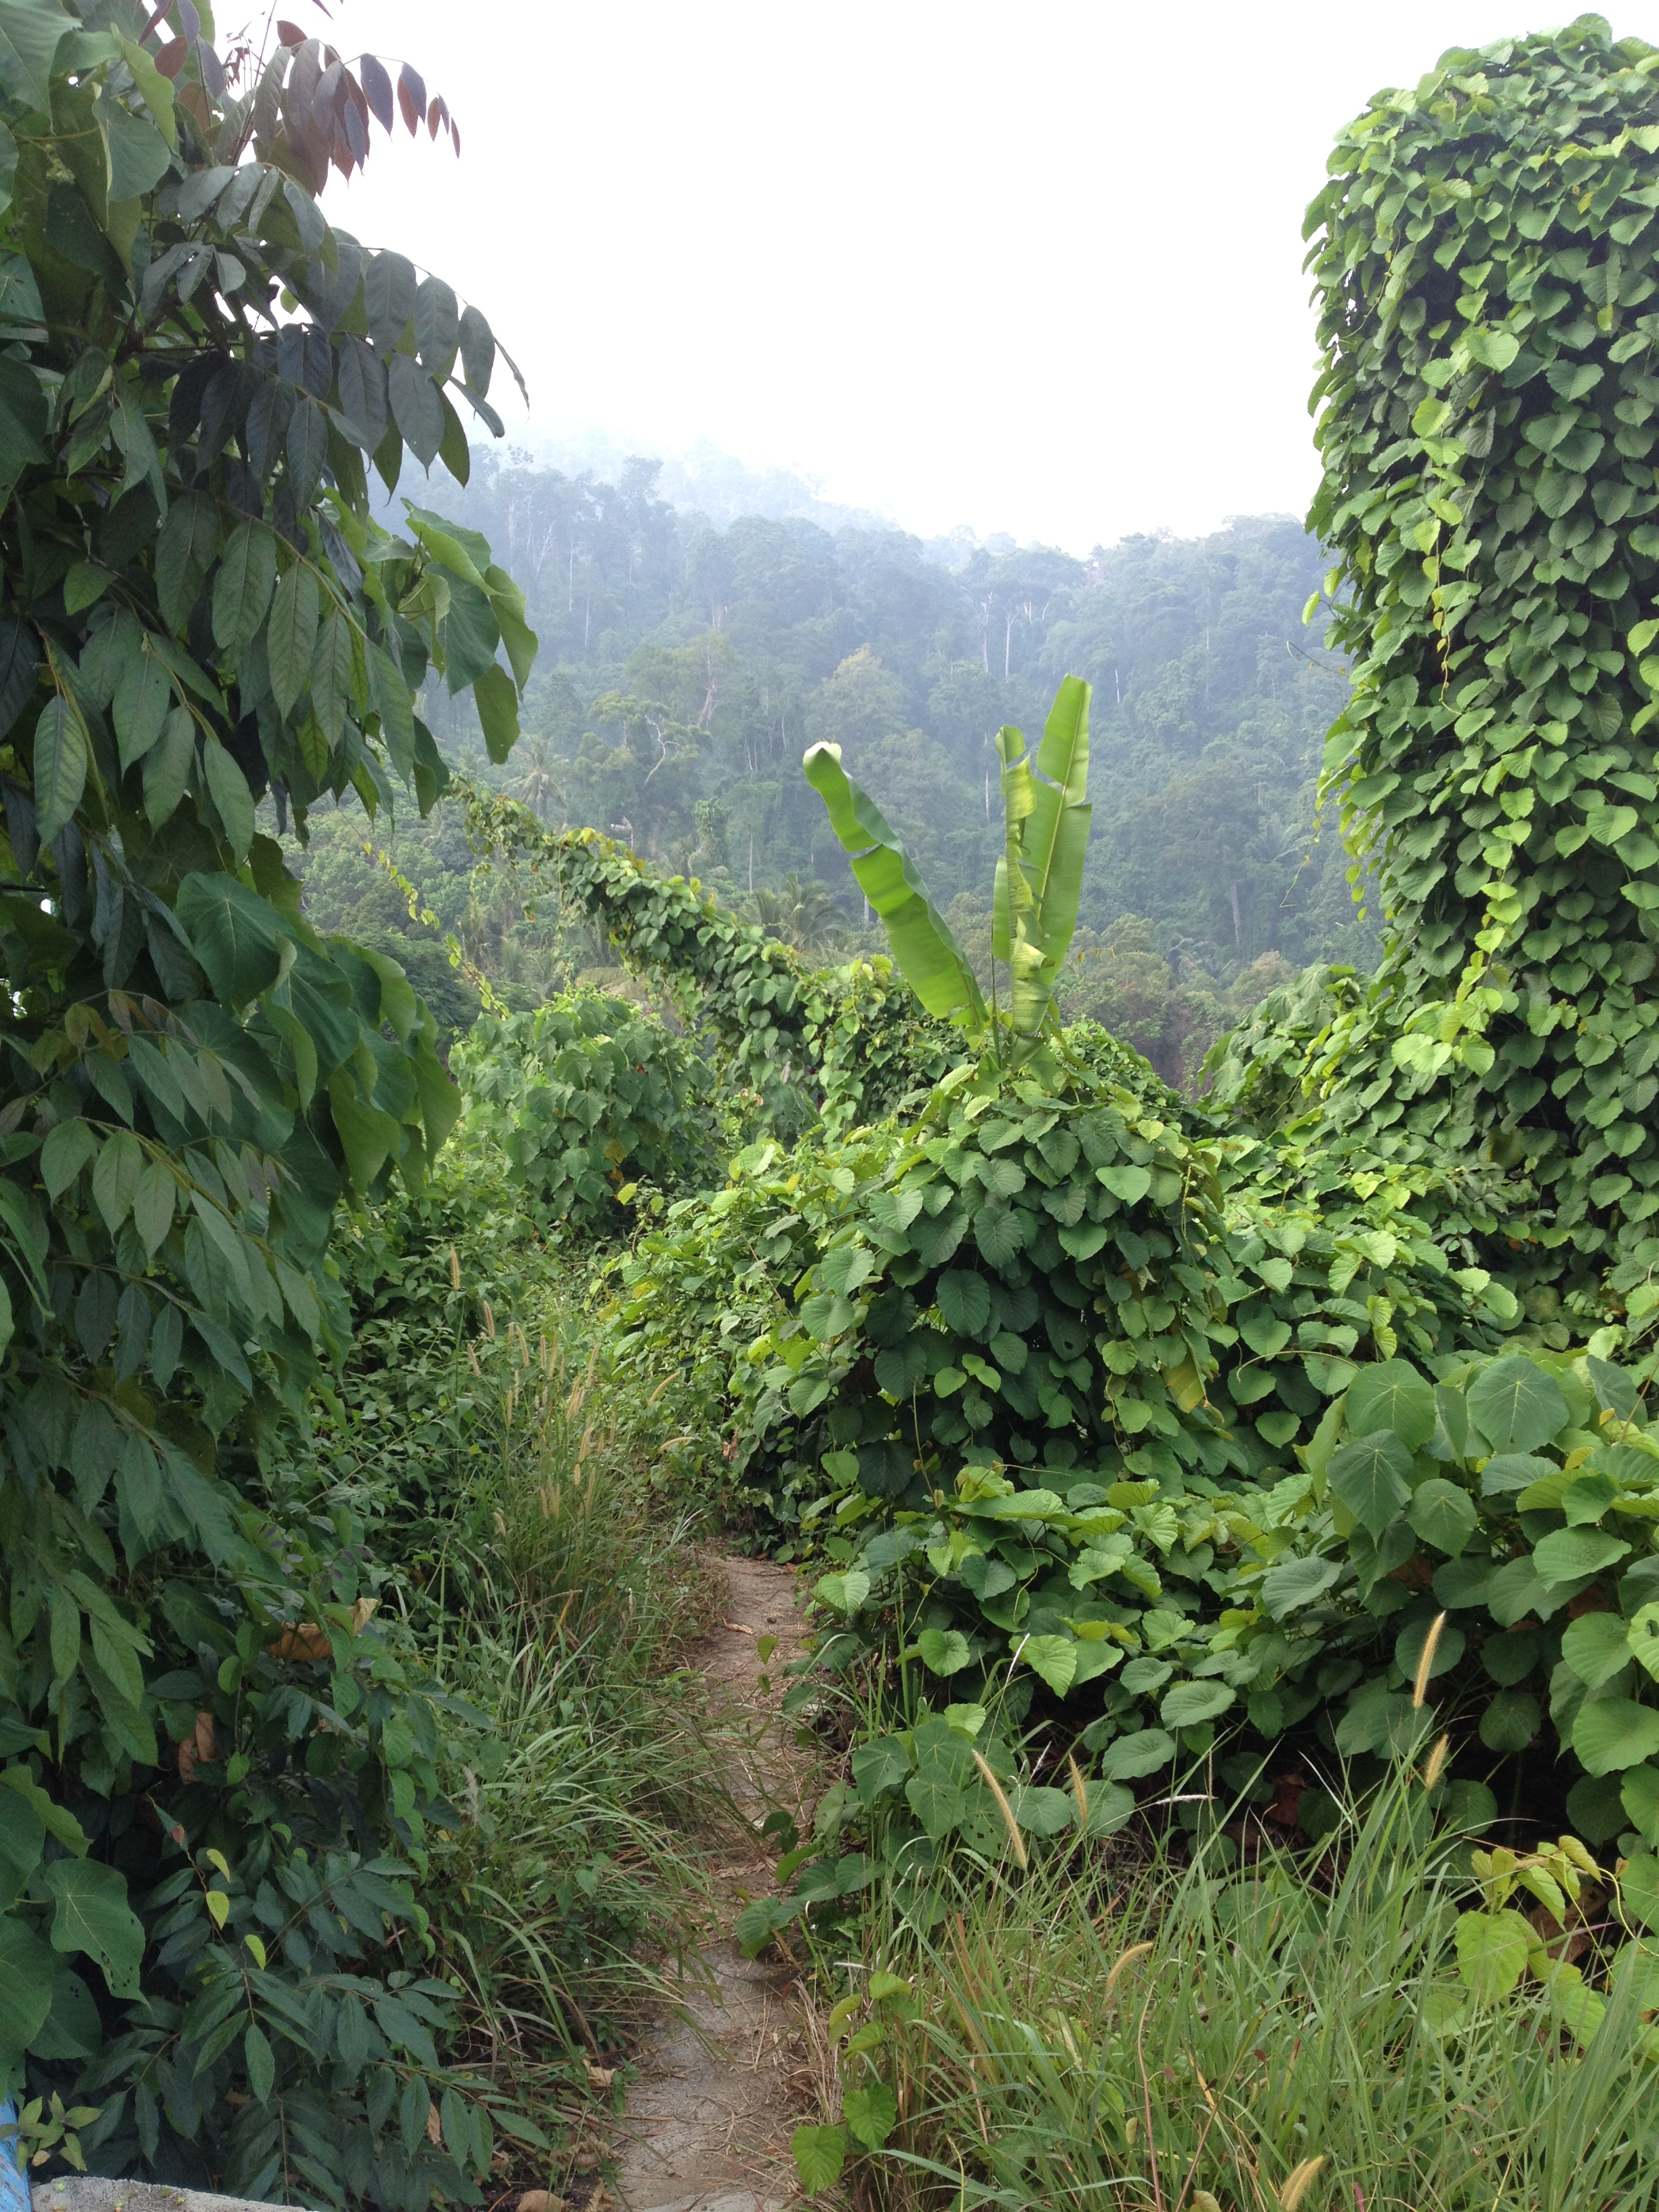 Trail into jungle path of Tekek to Juara